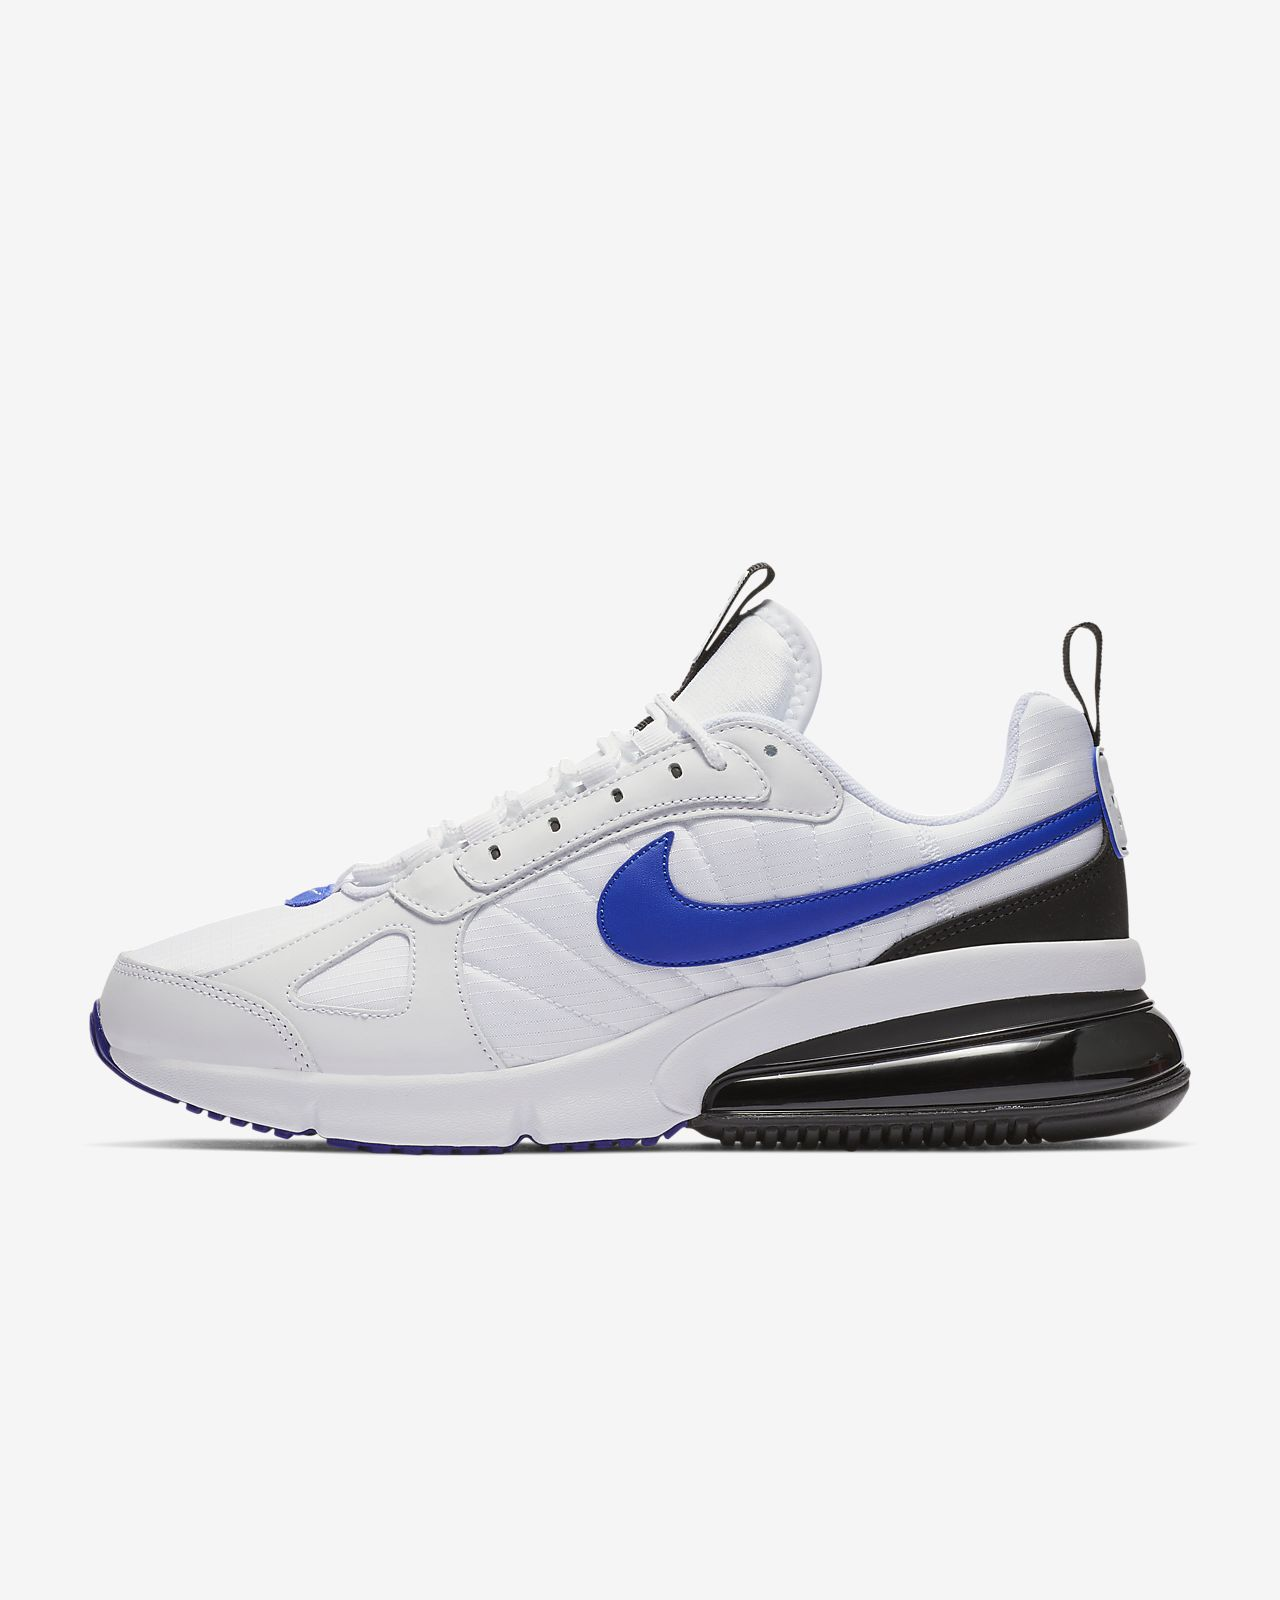 newest e3fd9 0e4b0 ... Nike Air Max 270 Futura Herrenschuh